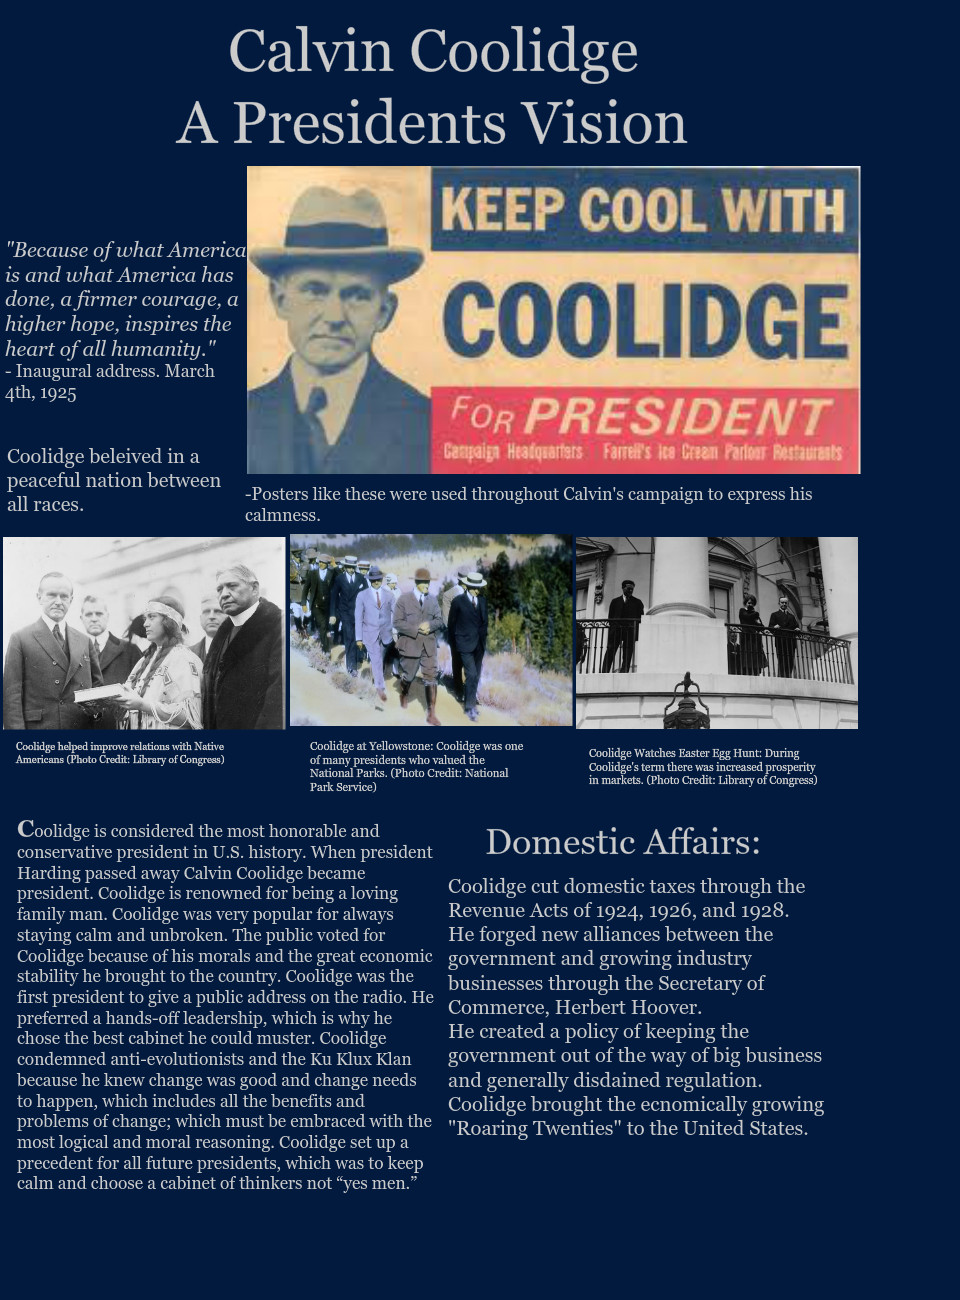 Calvin Coolidge, A Presidents Vision